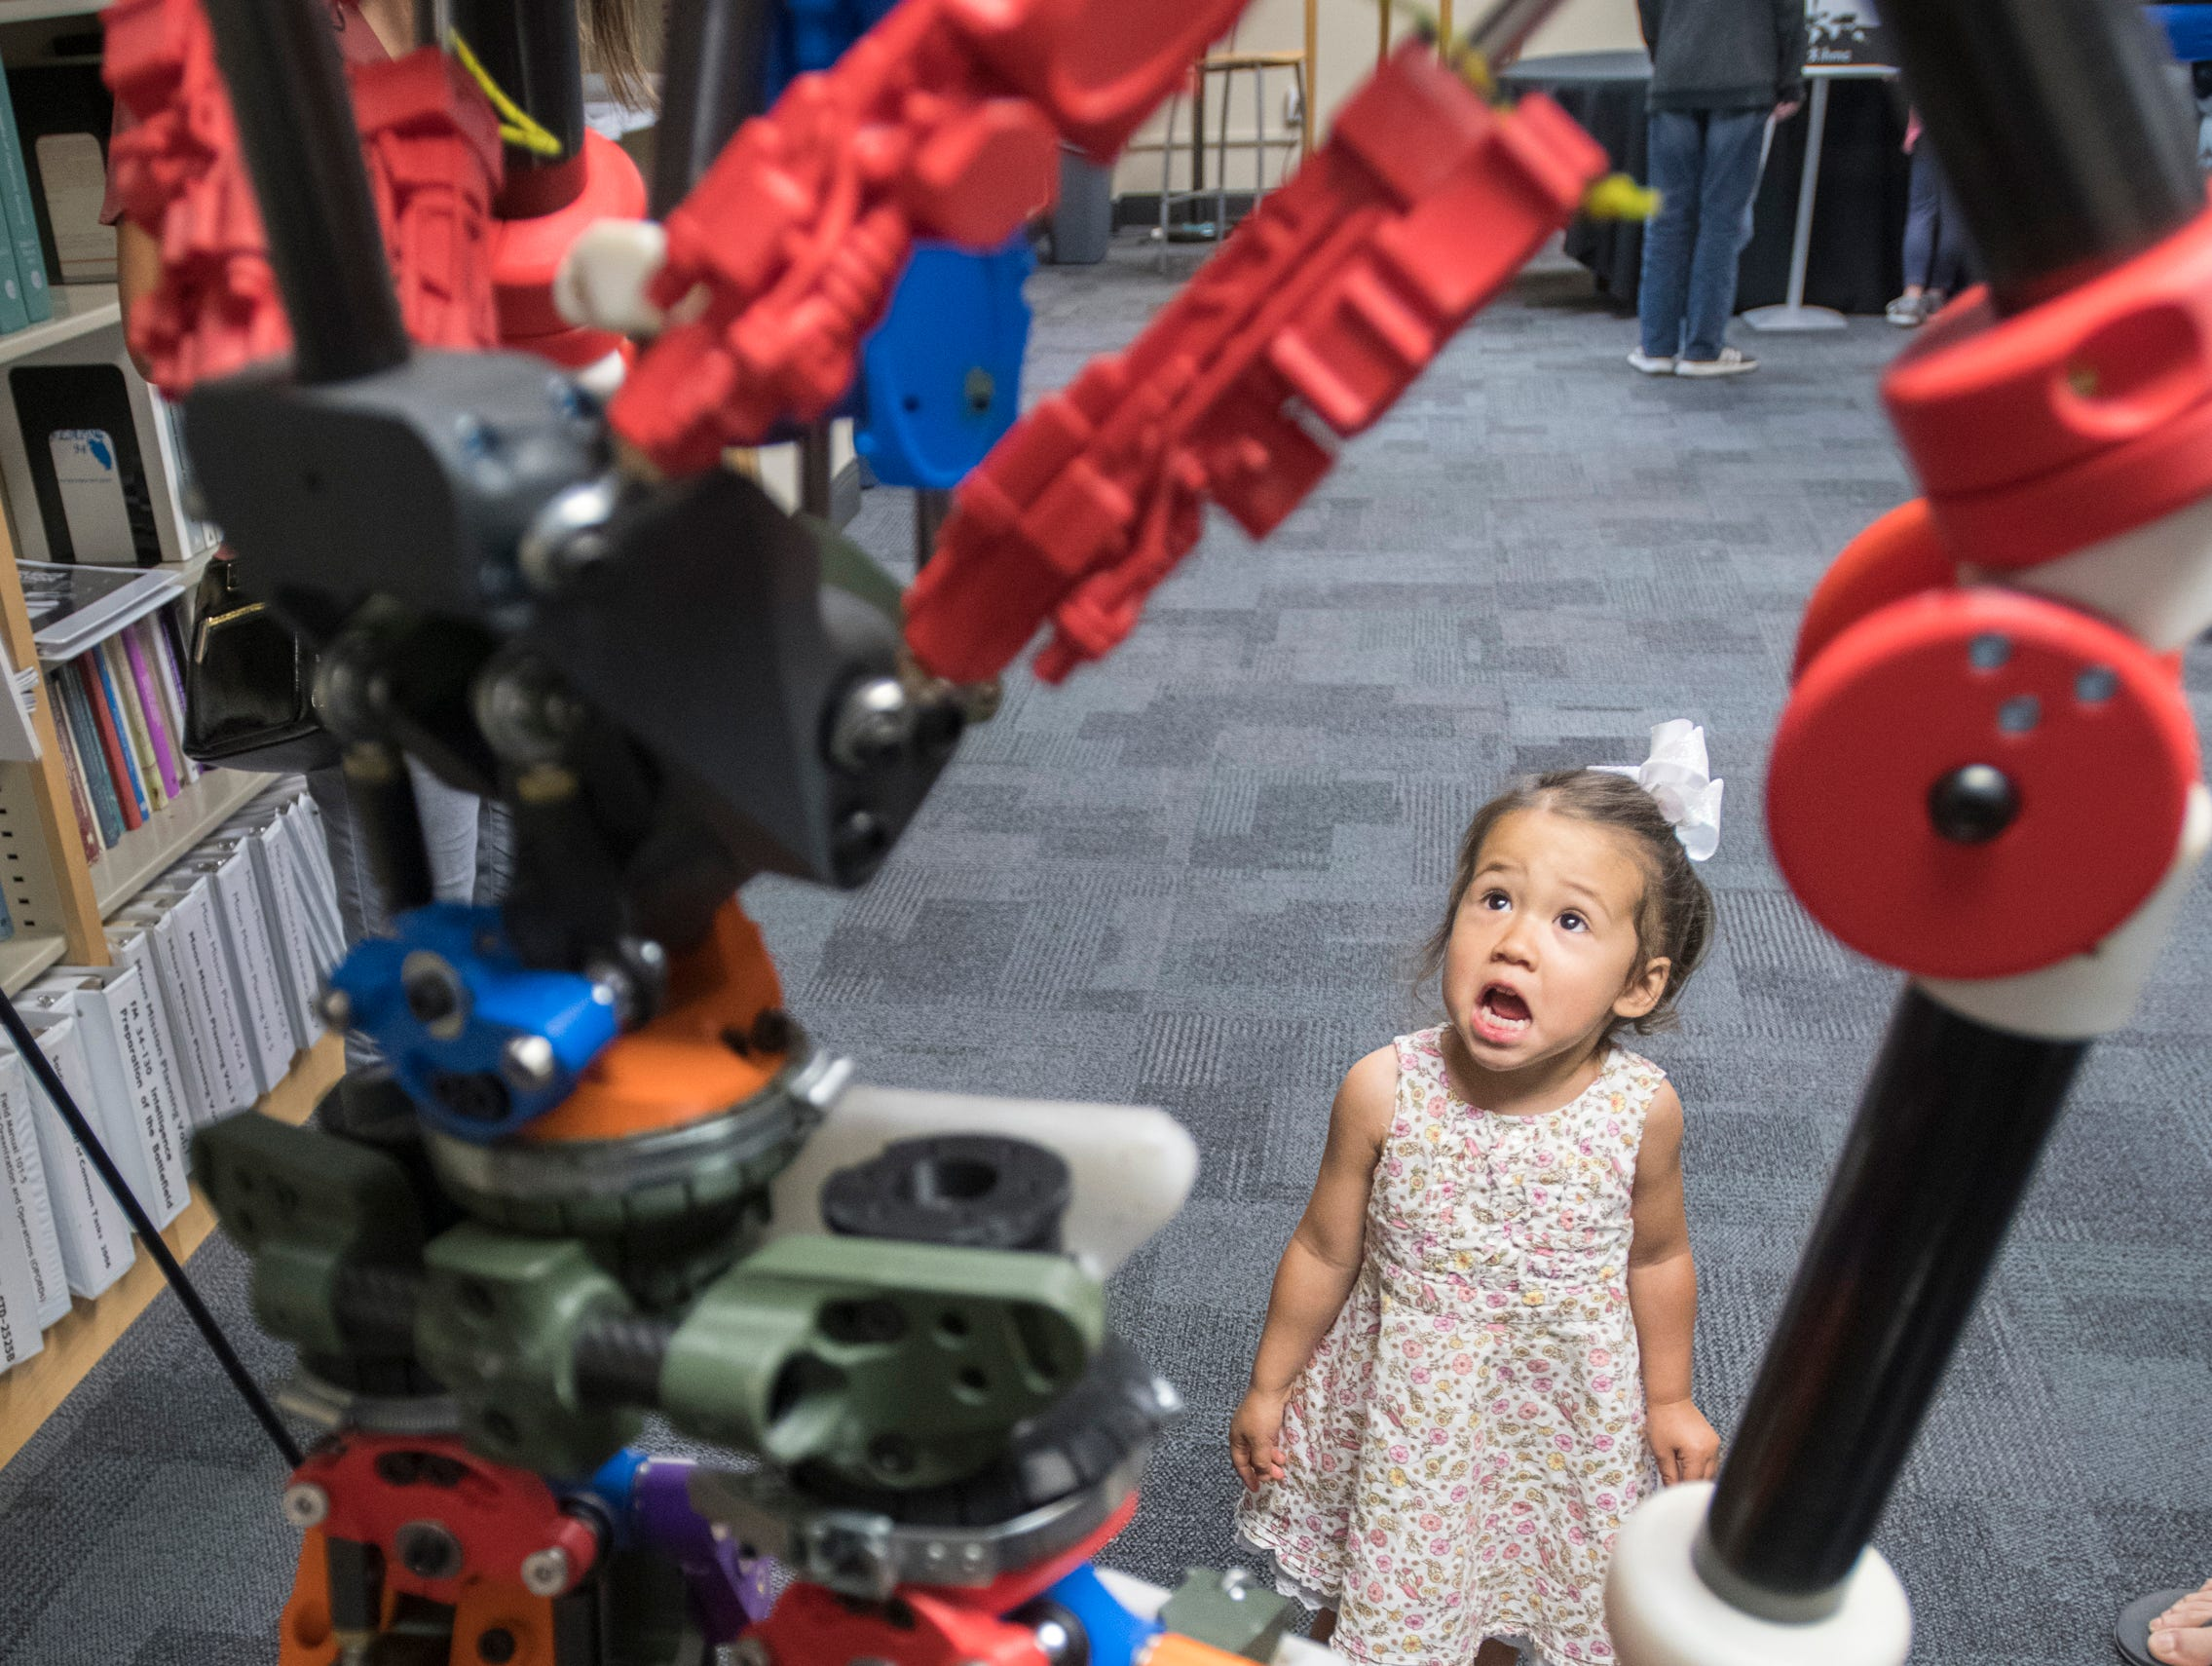 2 1/2 year old Nova Butler checks out the humanoid robot called Nadia during the IHMC Open House in downtown Pensacola on Friday, April 12, 2019.  Nadia is a gymnast-inspired robot with hydraulic actuators.